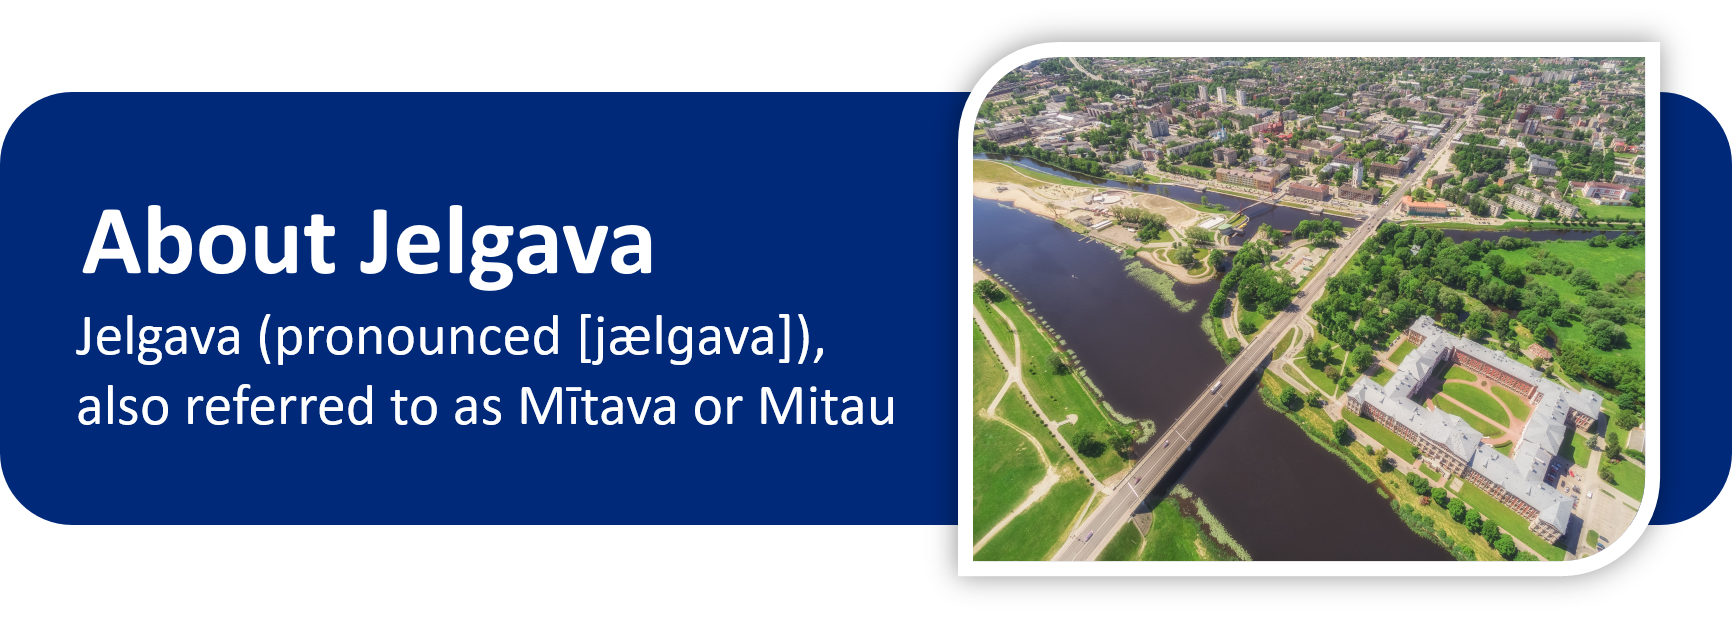 About_Jelgava.png